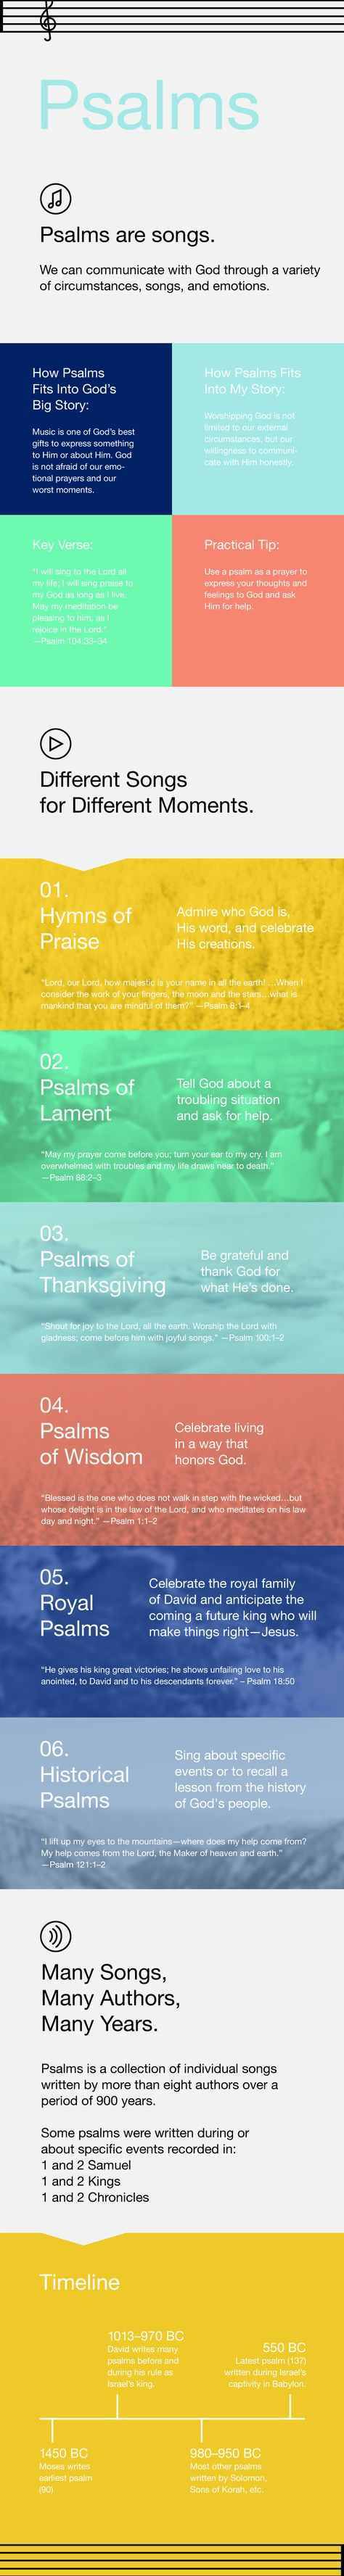 Everything You Need To Know About Psalms